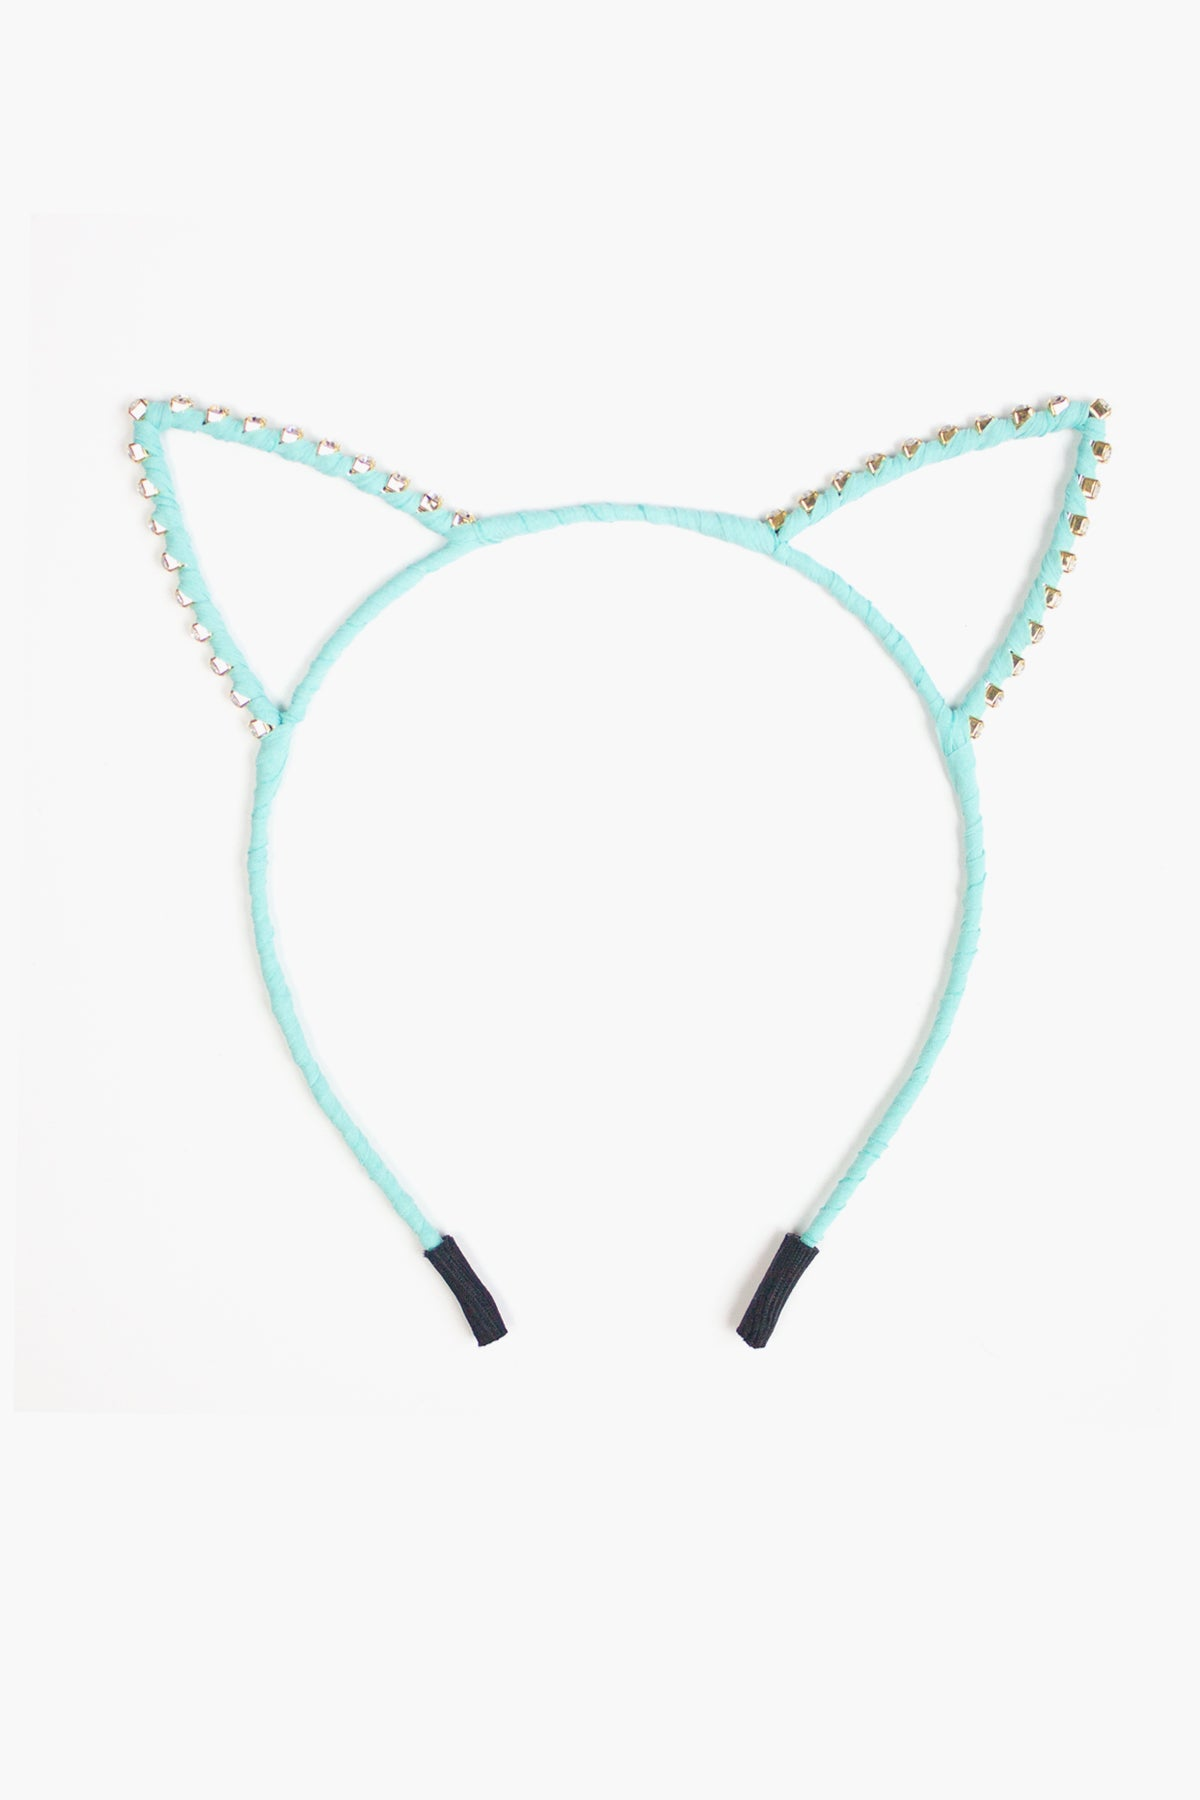 Cat Headband - Mint